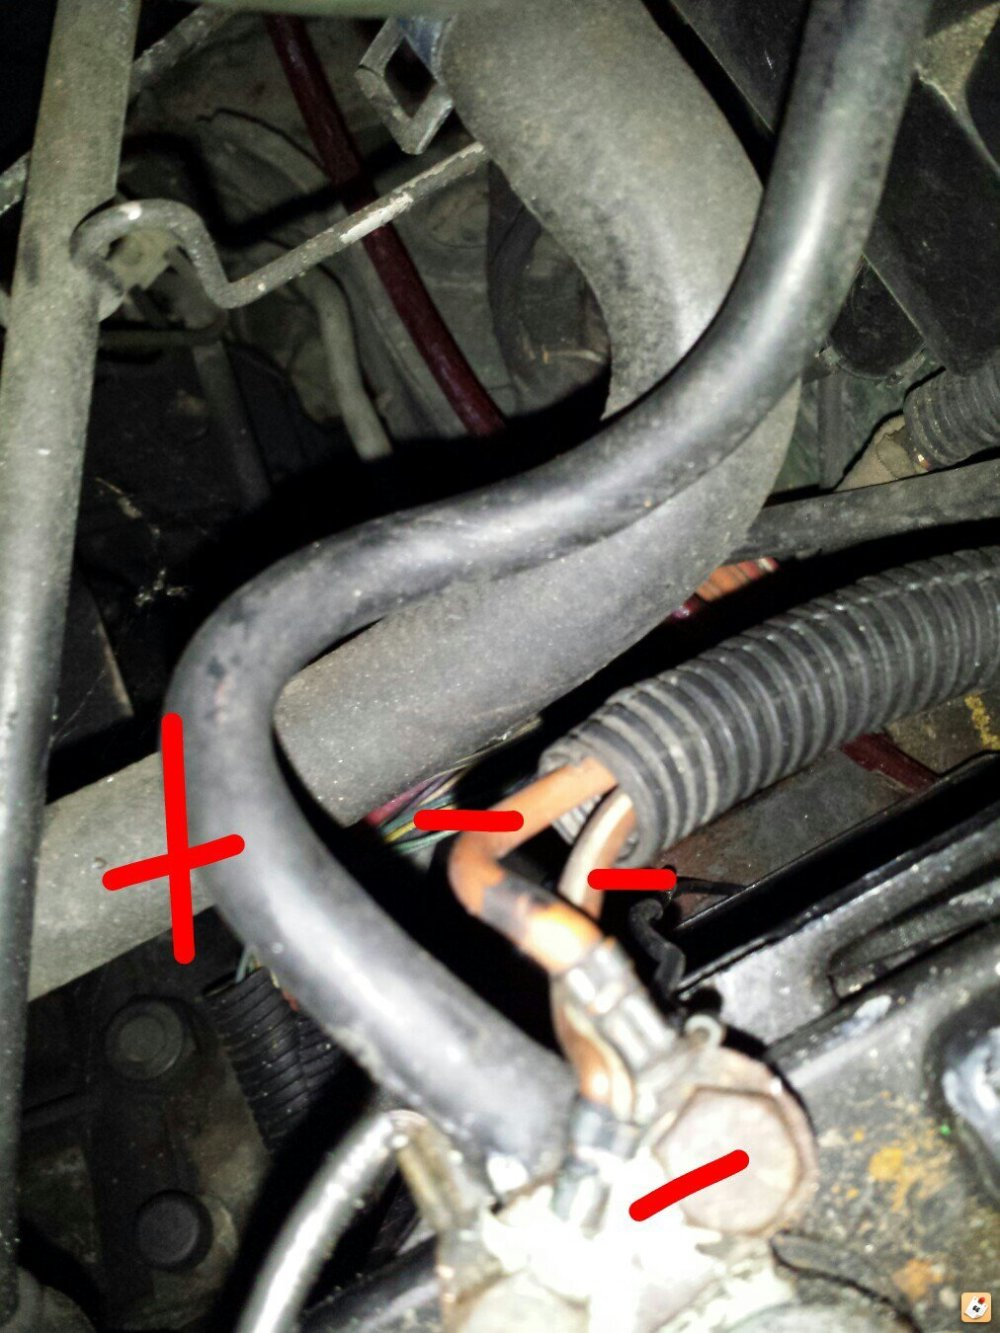 medium resolution of there are two red positive wires connected to it but the guys hand is in the way on my car this is where the negative cable connects to the negative side